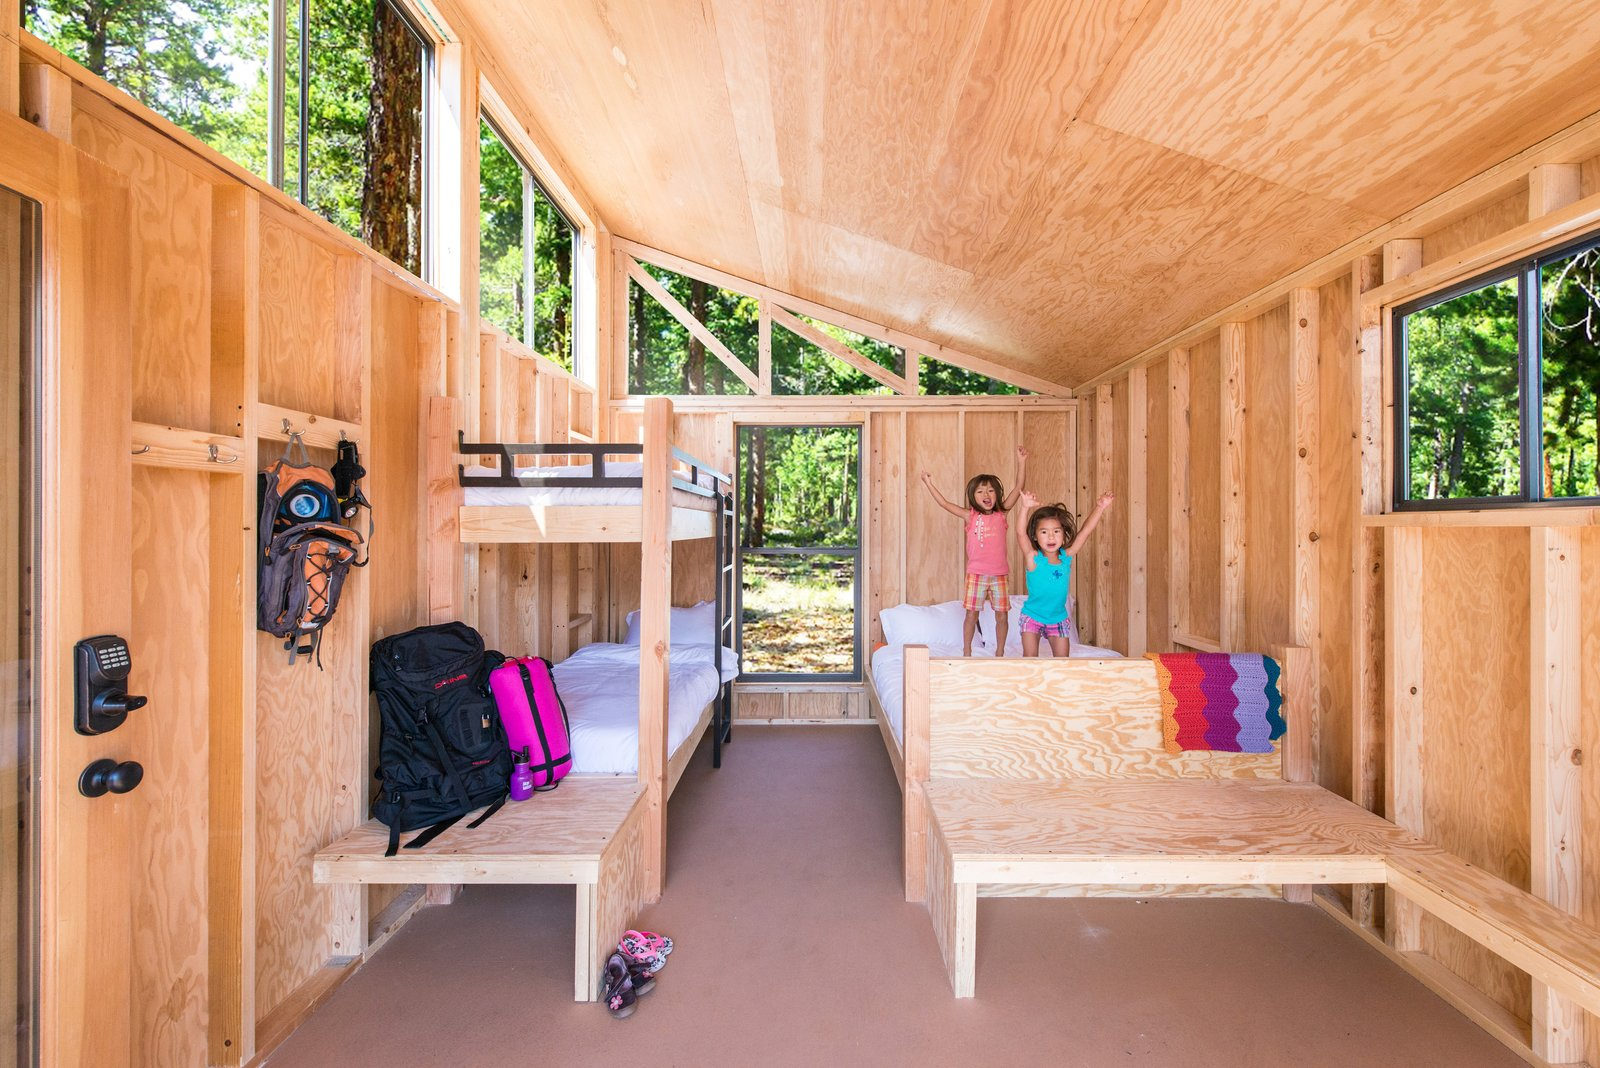 Bedroom, Bunks, Bed, and Chair The structures were designed by Cal State Polytechnic University, Pomona, students.  Photo 1 of 12 in 10 Prefabricated or Modular Structures That Use Plywood in Creative Ways from Modern Prefab Cabins for California State Parks